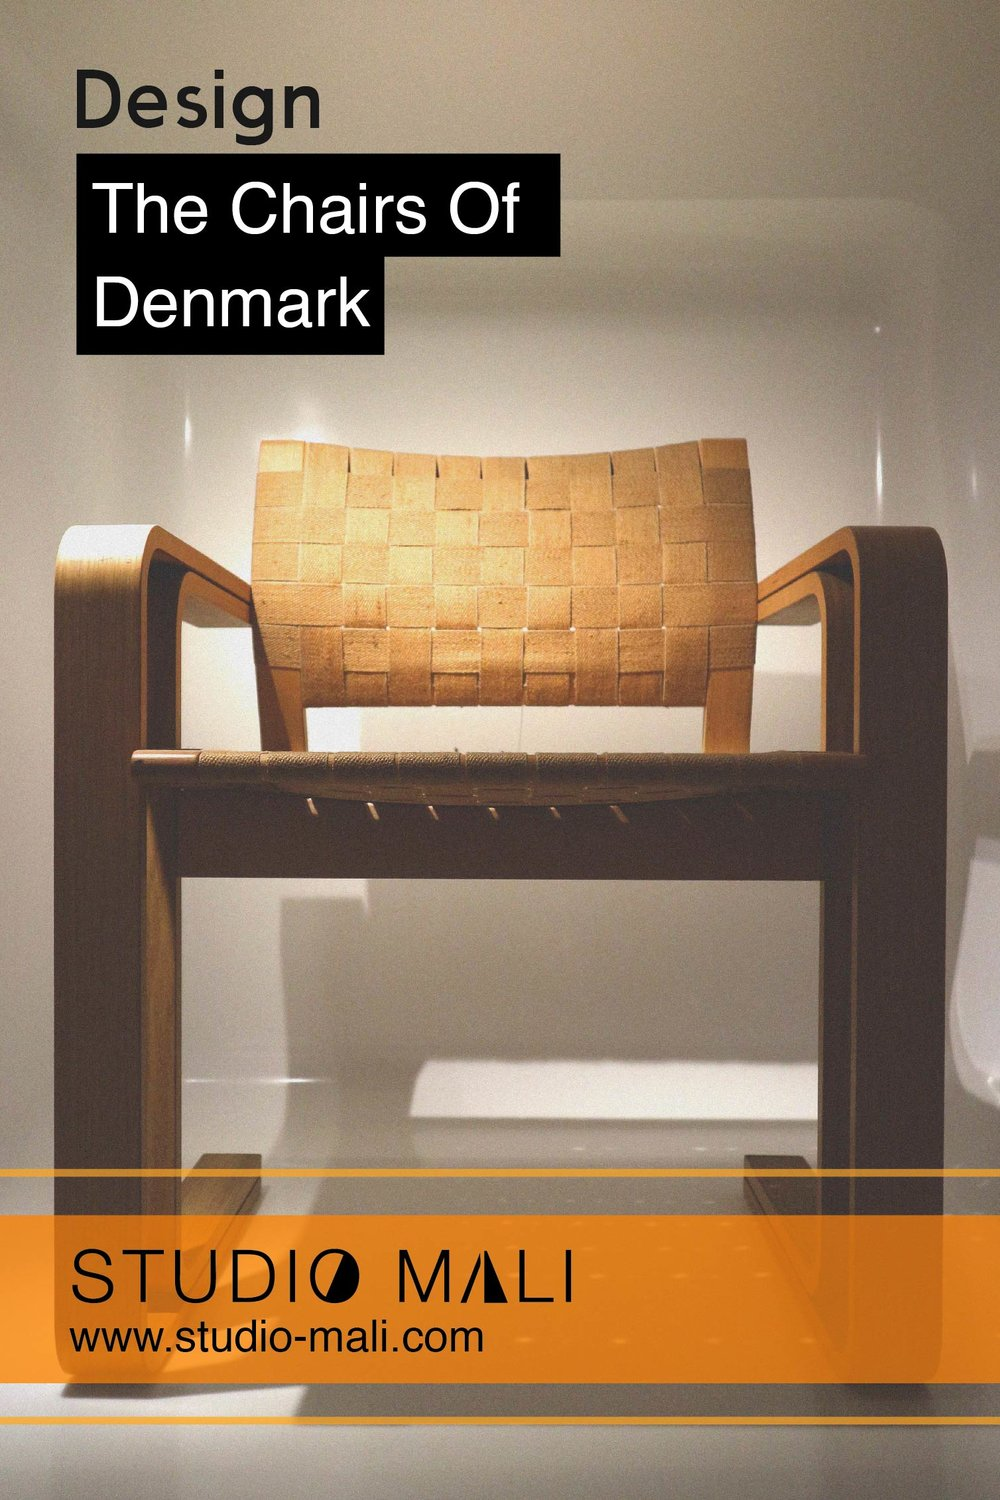 The Chairs Of Denmark, by Studio Mali